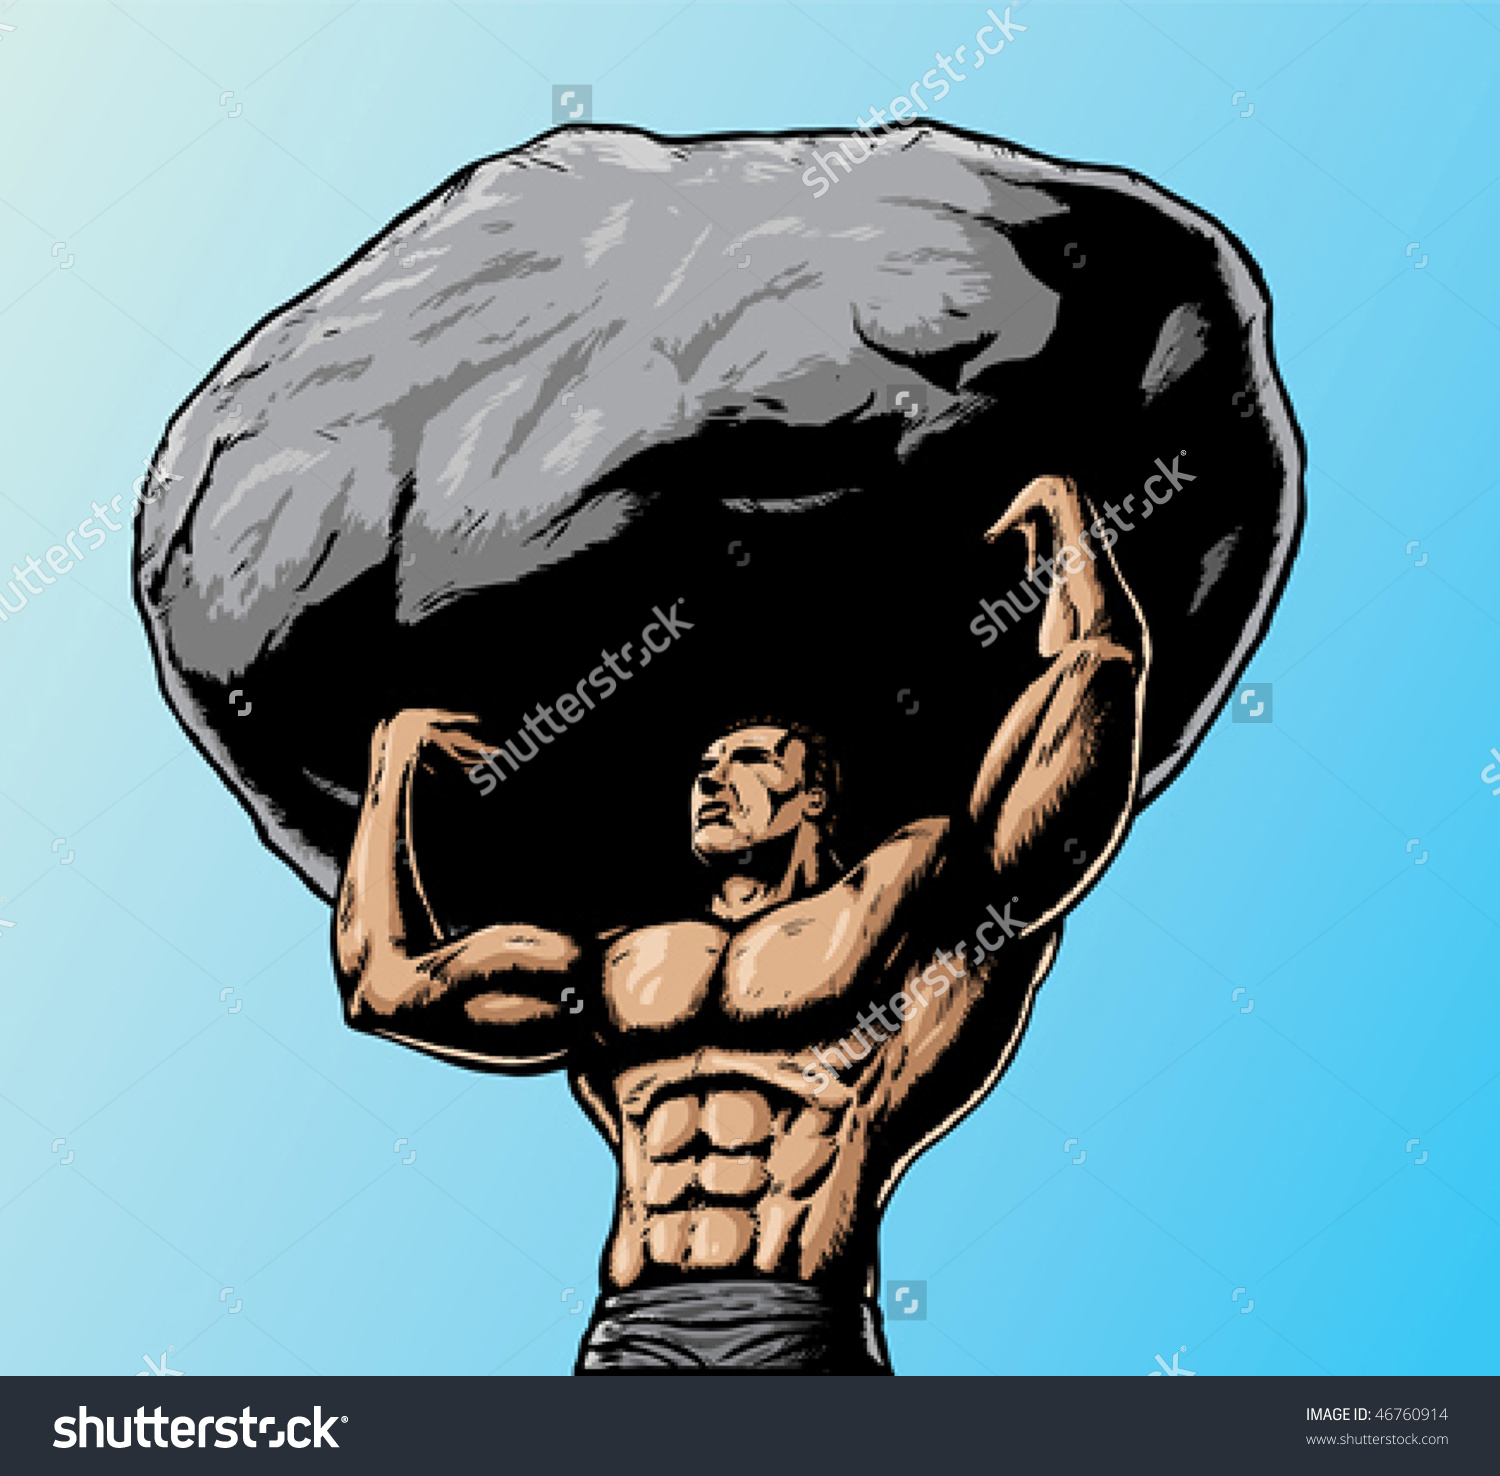 Stoneworks boulder joust graphic free stock Man holding boulder clipart - ClipartFest graphic free stock